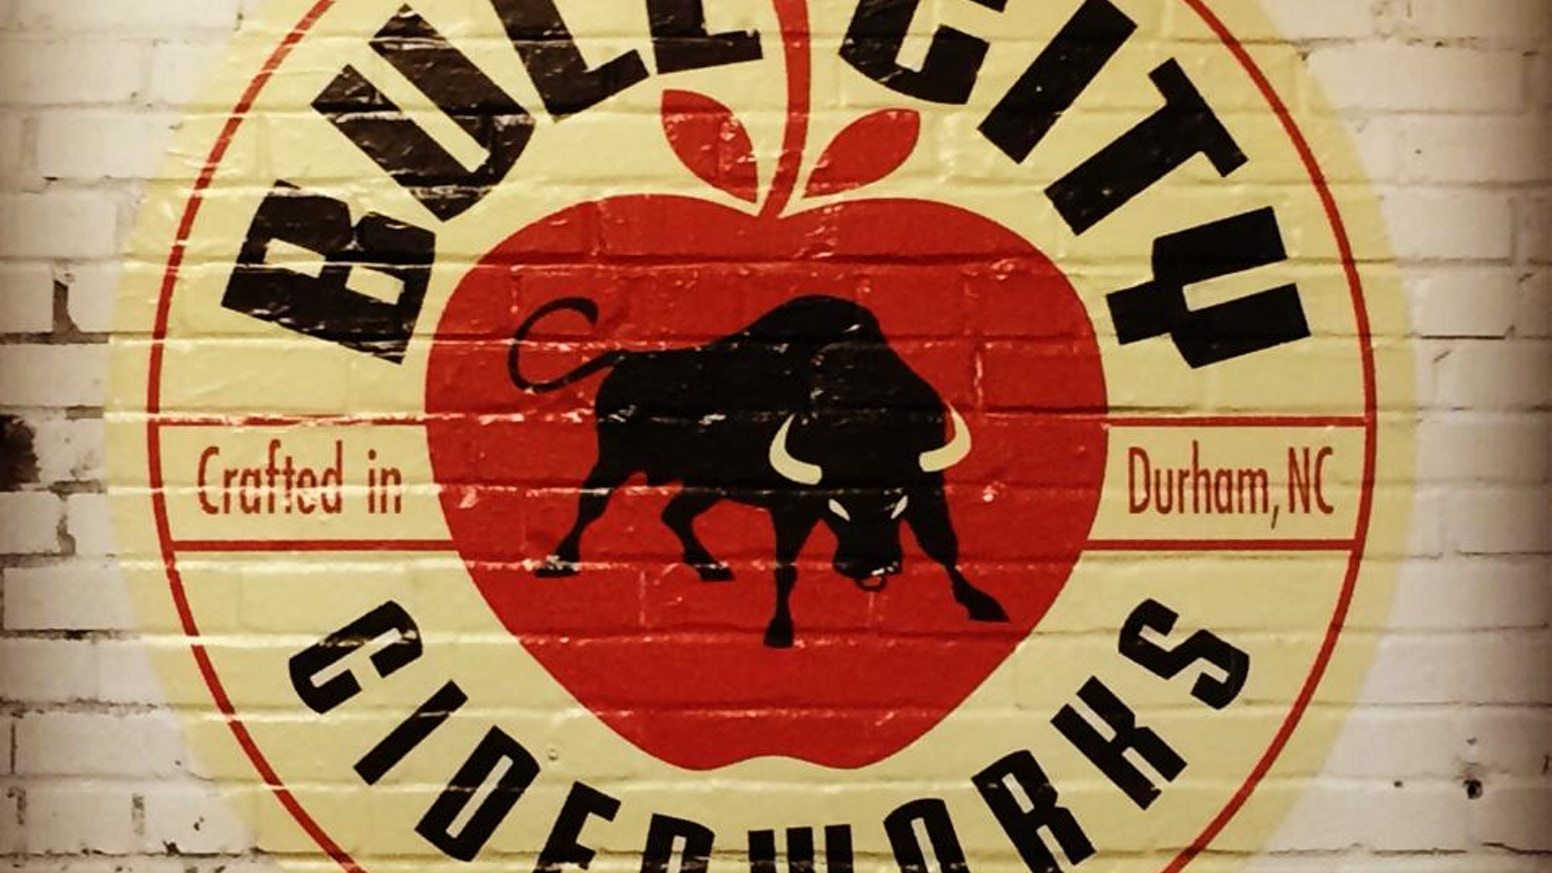 Bull City Ciderworks produces refreshingly unique modern american ciders using quality local ingredients. We love what we do!